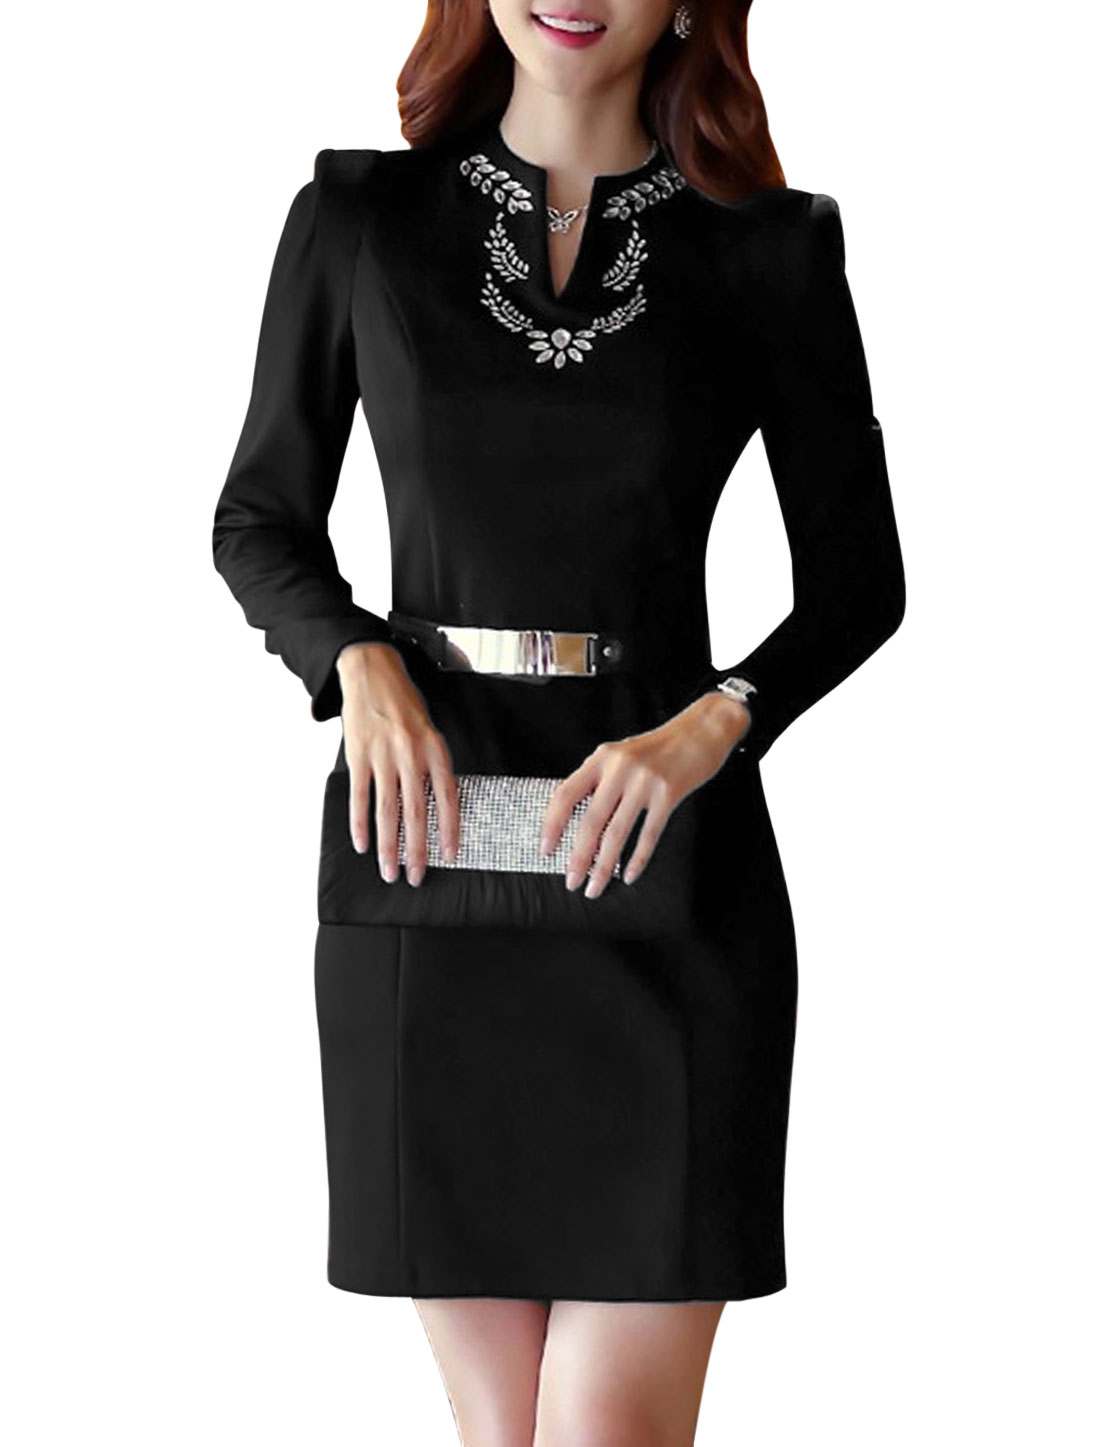 Lady Rhinestones Embellished Hidden Zipper Sheath Dress w Waist Strap Black S